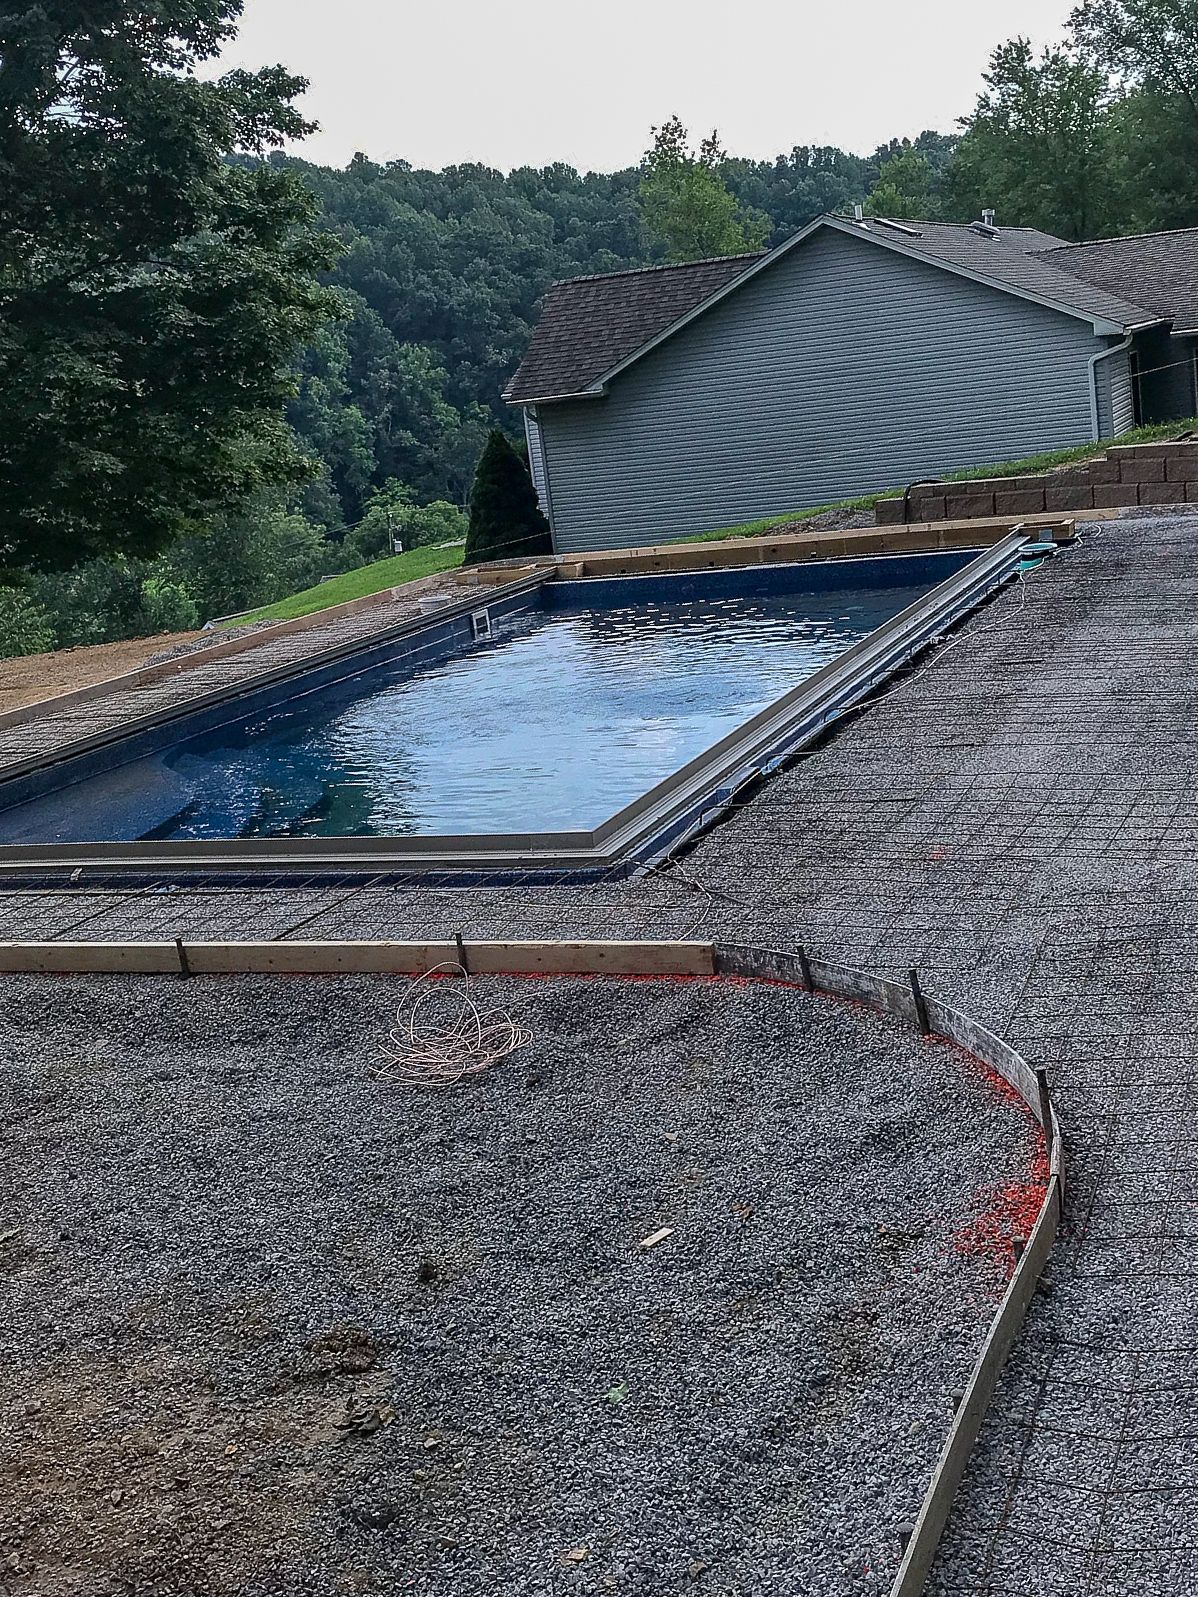 This 14 X 30 Majesty Fiberglass Pool Is Being Installed In Bridgeport Wv And Features An Automatic Cover Chlorine Gener Pool Construction Pool Viking Pools